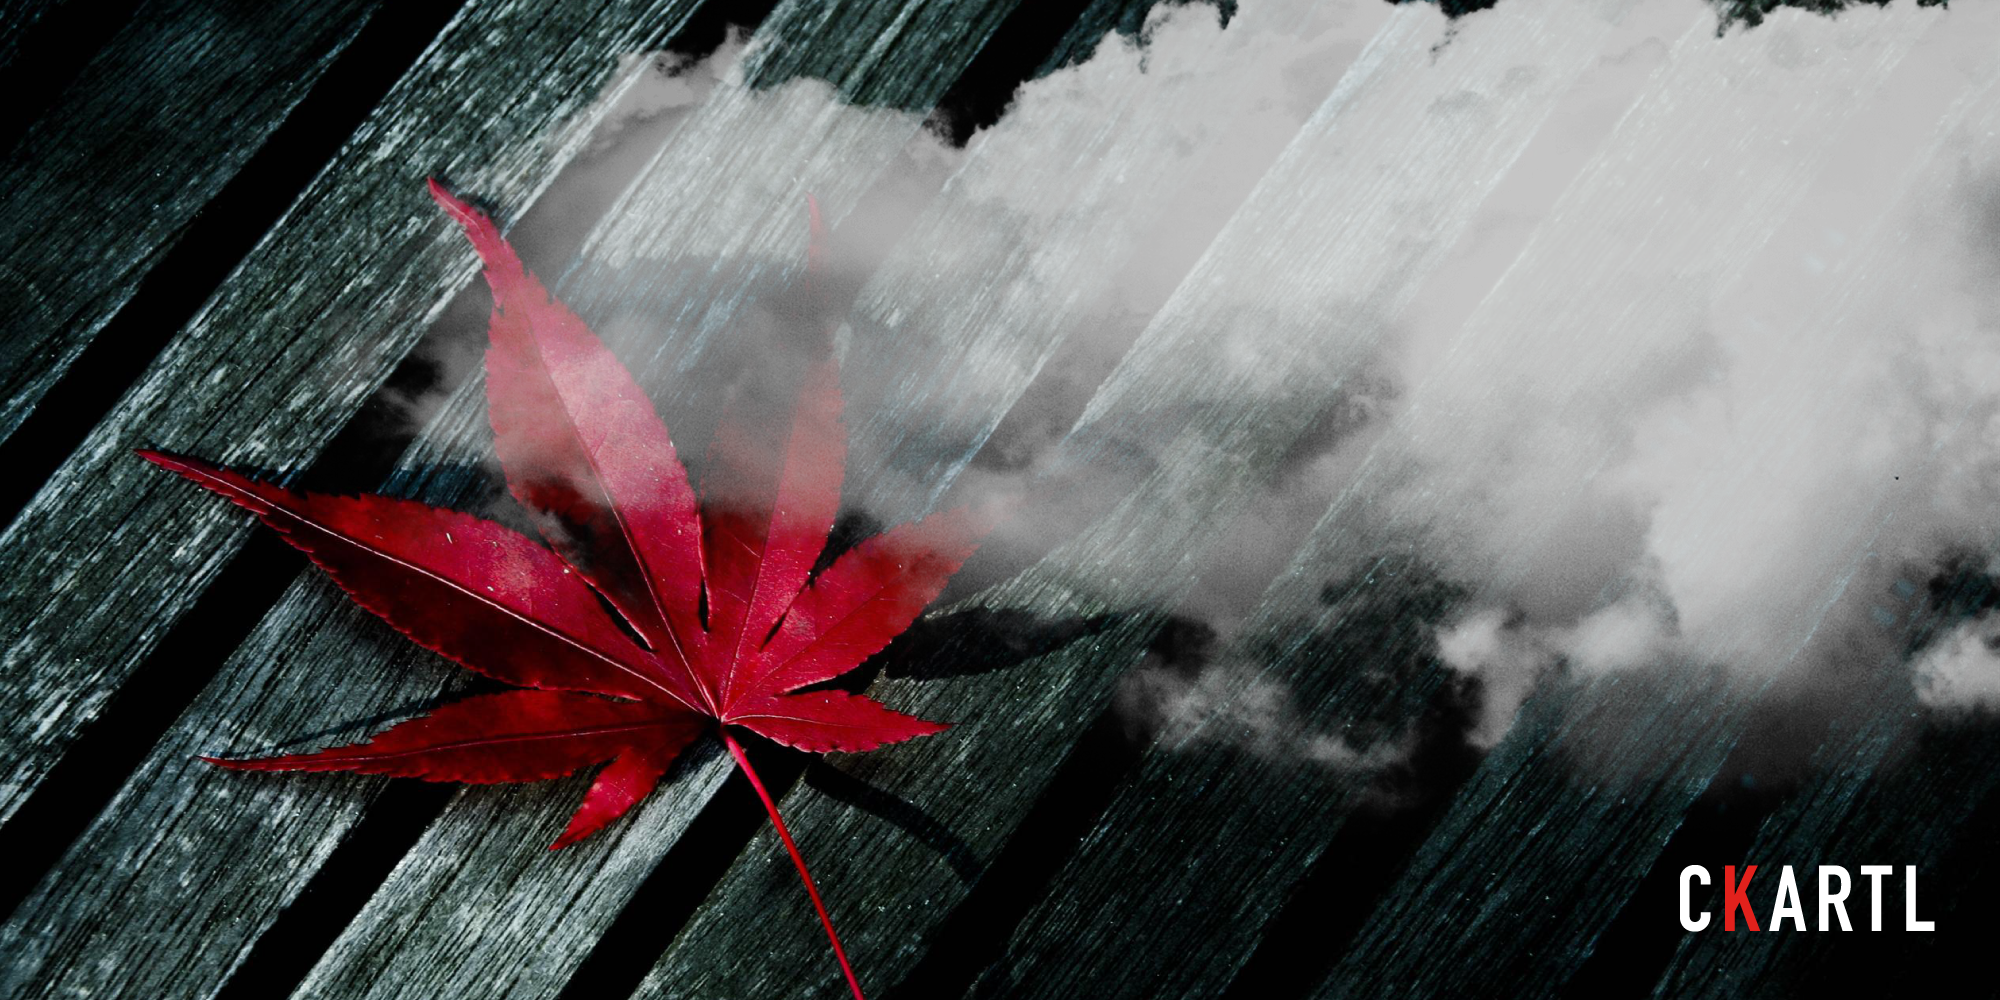 OCTOBER 17TH 2018 - CANADA MAKES HISTORY + LEGALIZES RECREATIONAL CANNABIS